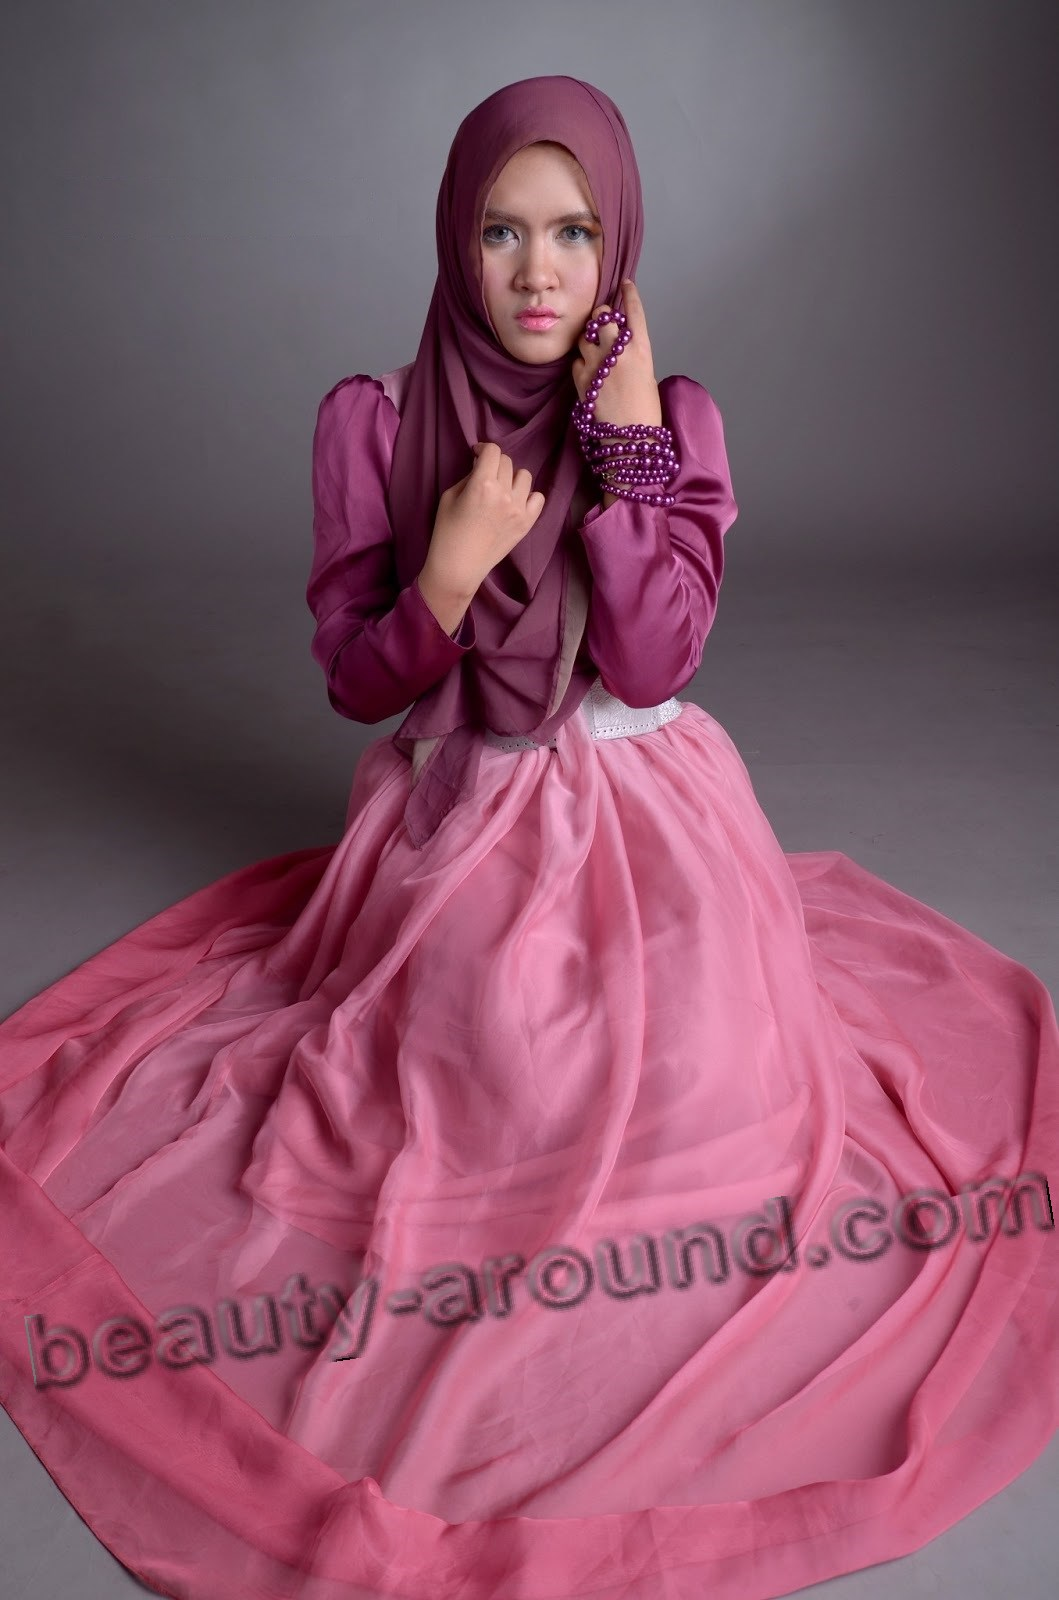 Dika Restiyani photo, Miss World Muslimah 2011 photo